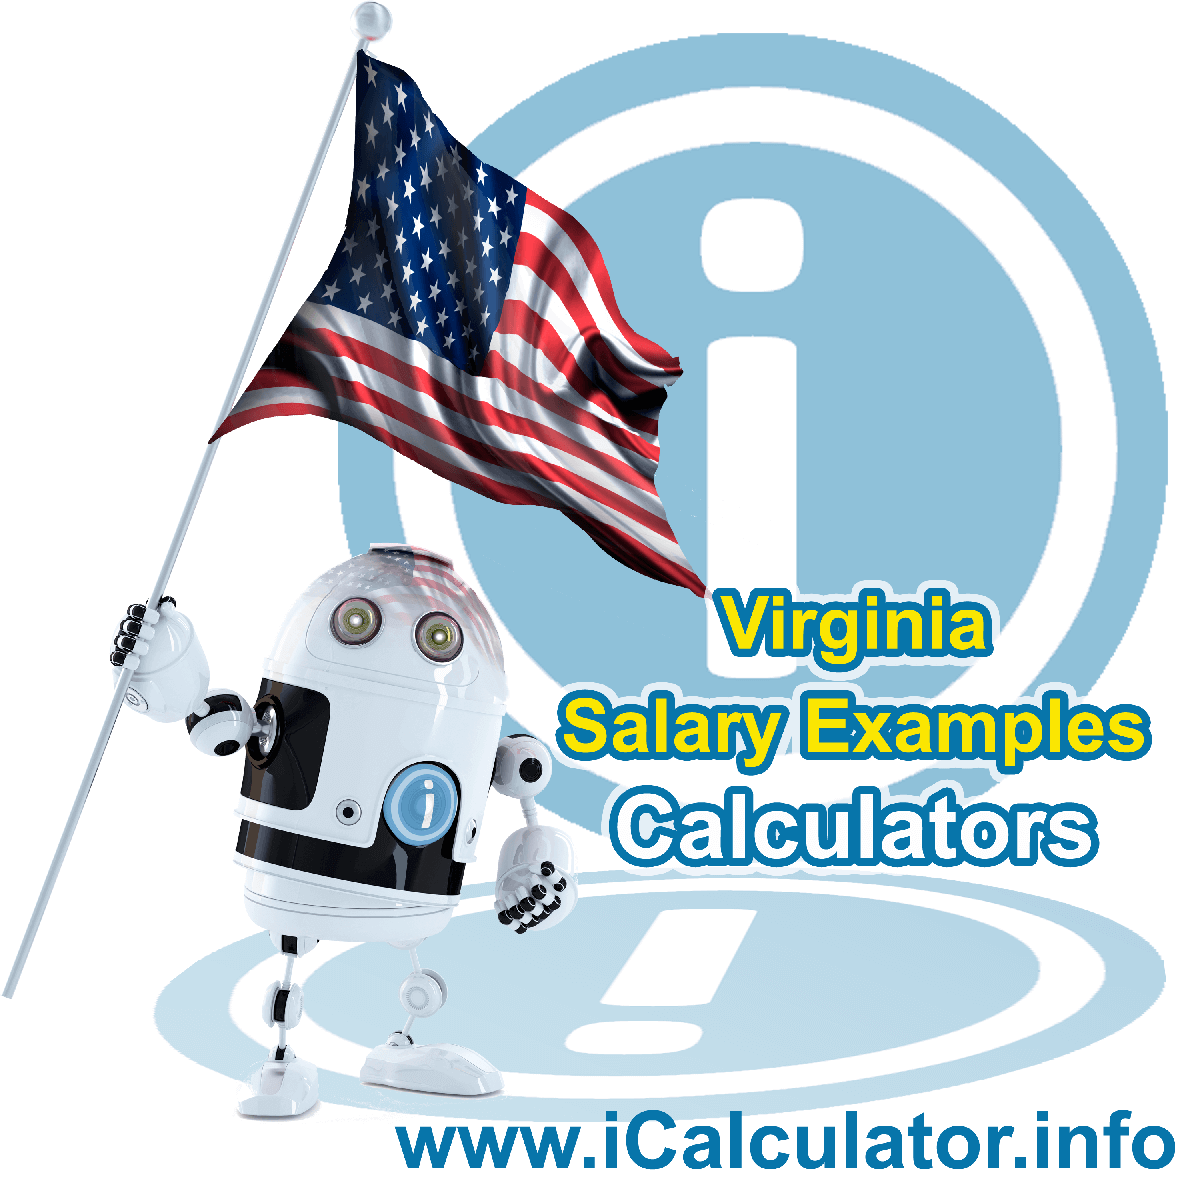 Virginia Salary Example for $220.00 in 2020 | iCalculator | $220.00 salary example for employee and employer paying Virginia State tincome taxes. Detailed salary after tax calculation including Virginia State Tax, Federal State Tax, Medicare Deductions, Social Security, Capital Gains and other income tax and salary deductions complete with supporting Virginia state tax tables